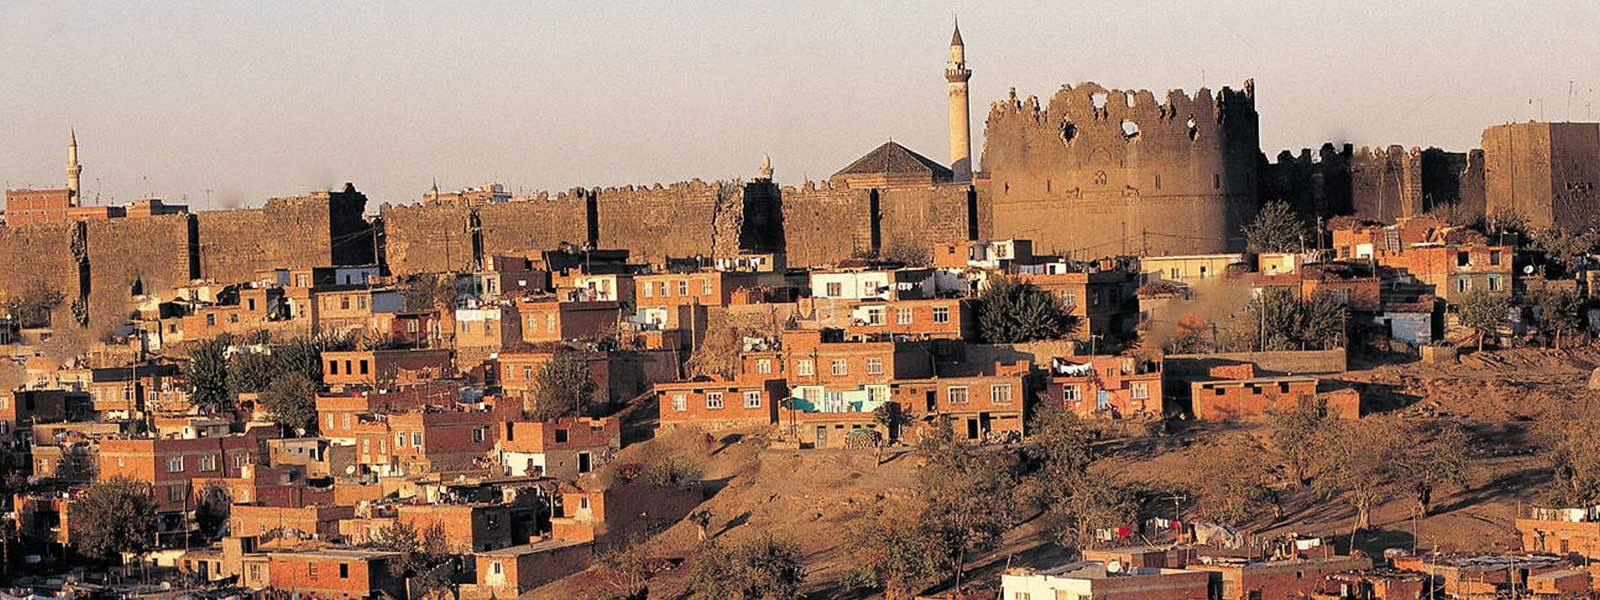 Diyarbakir Fortress in Southeastern Turkey